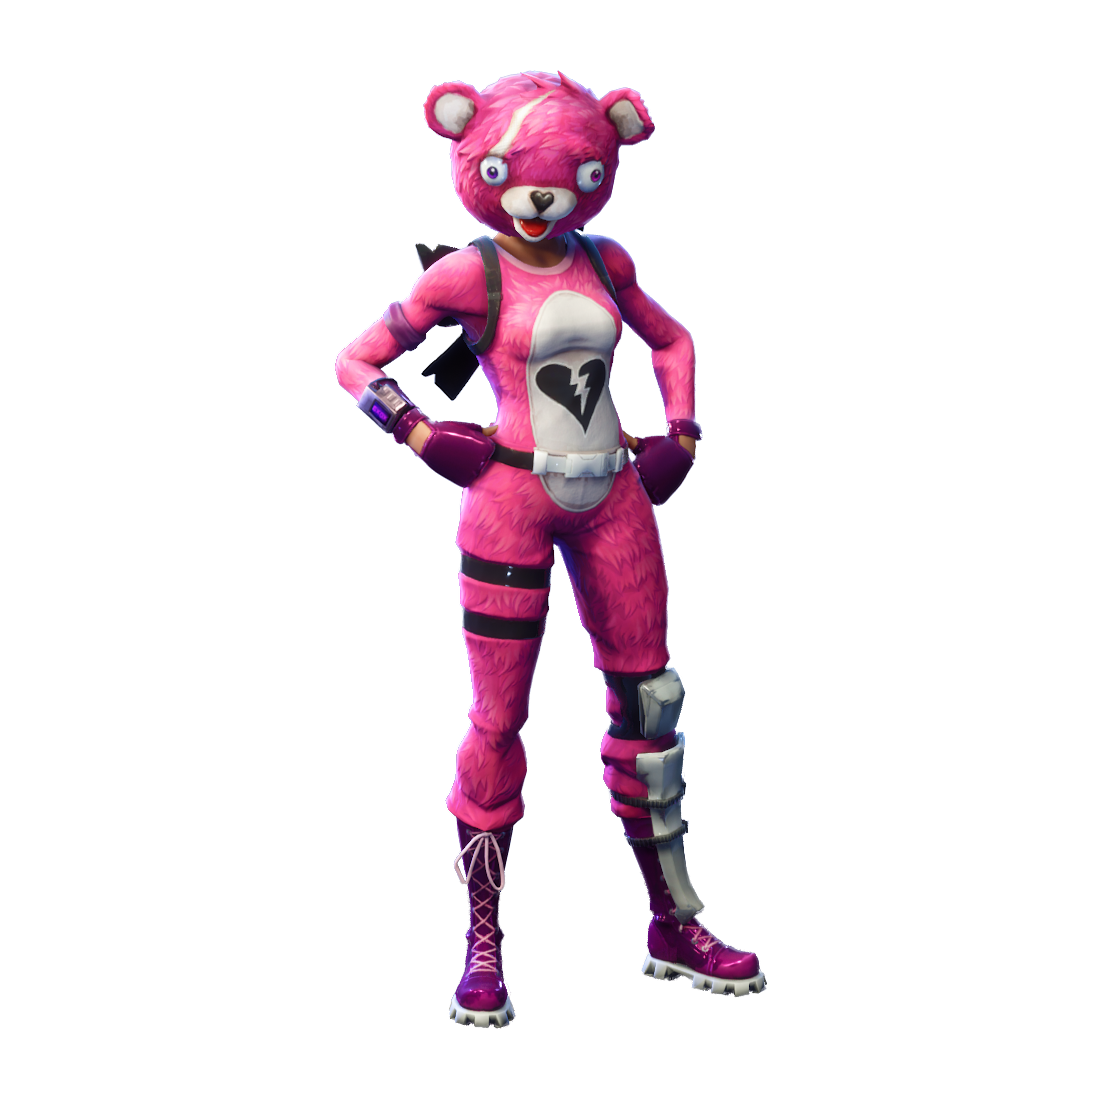 purepng.com-fortnite-cuddle-team-leaderfortnitefortnite-battle-royalebattle-royaleepic-gamesgames-1251525434657vtc97.png